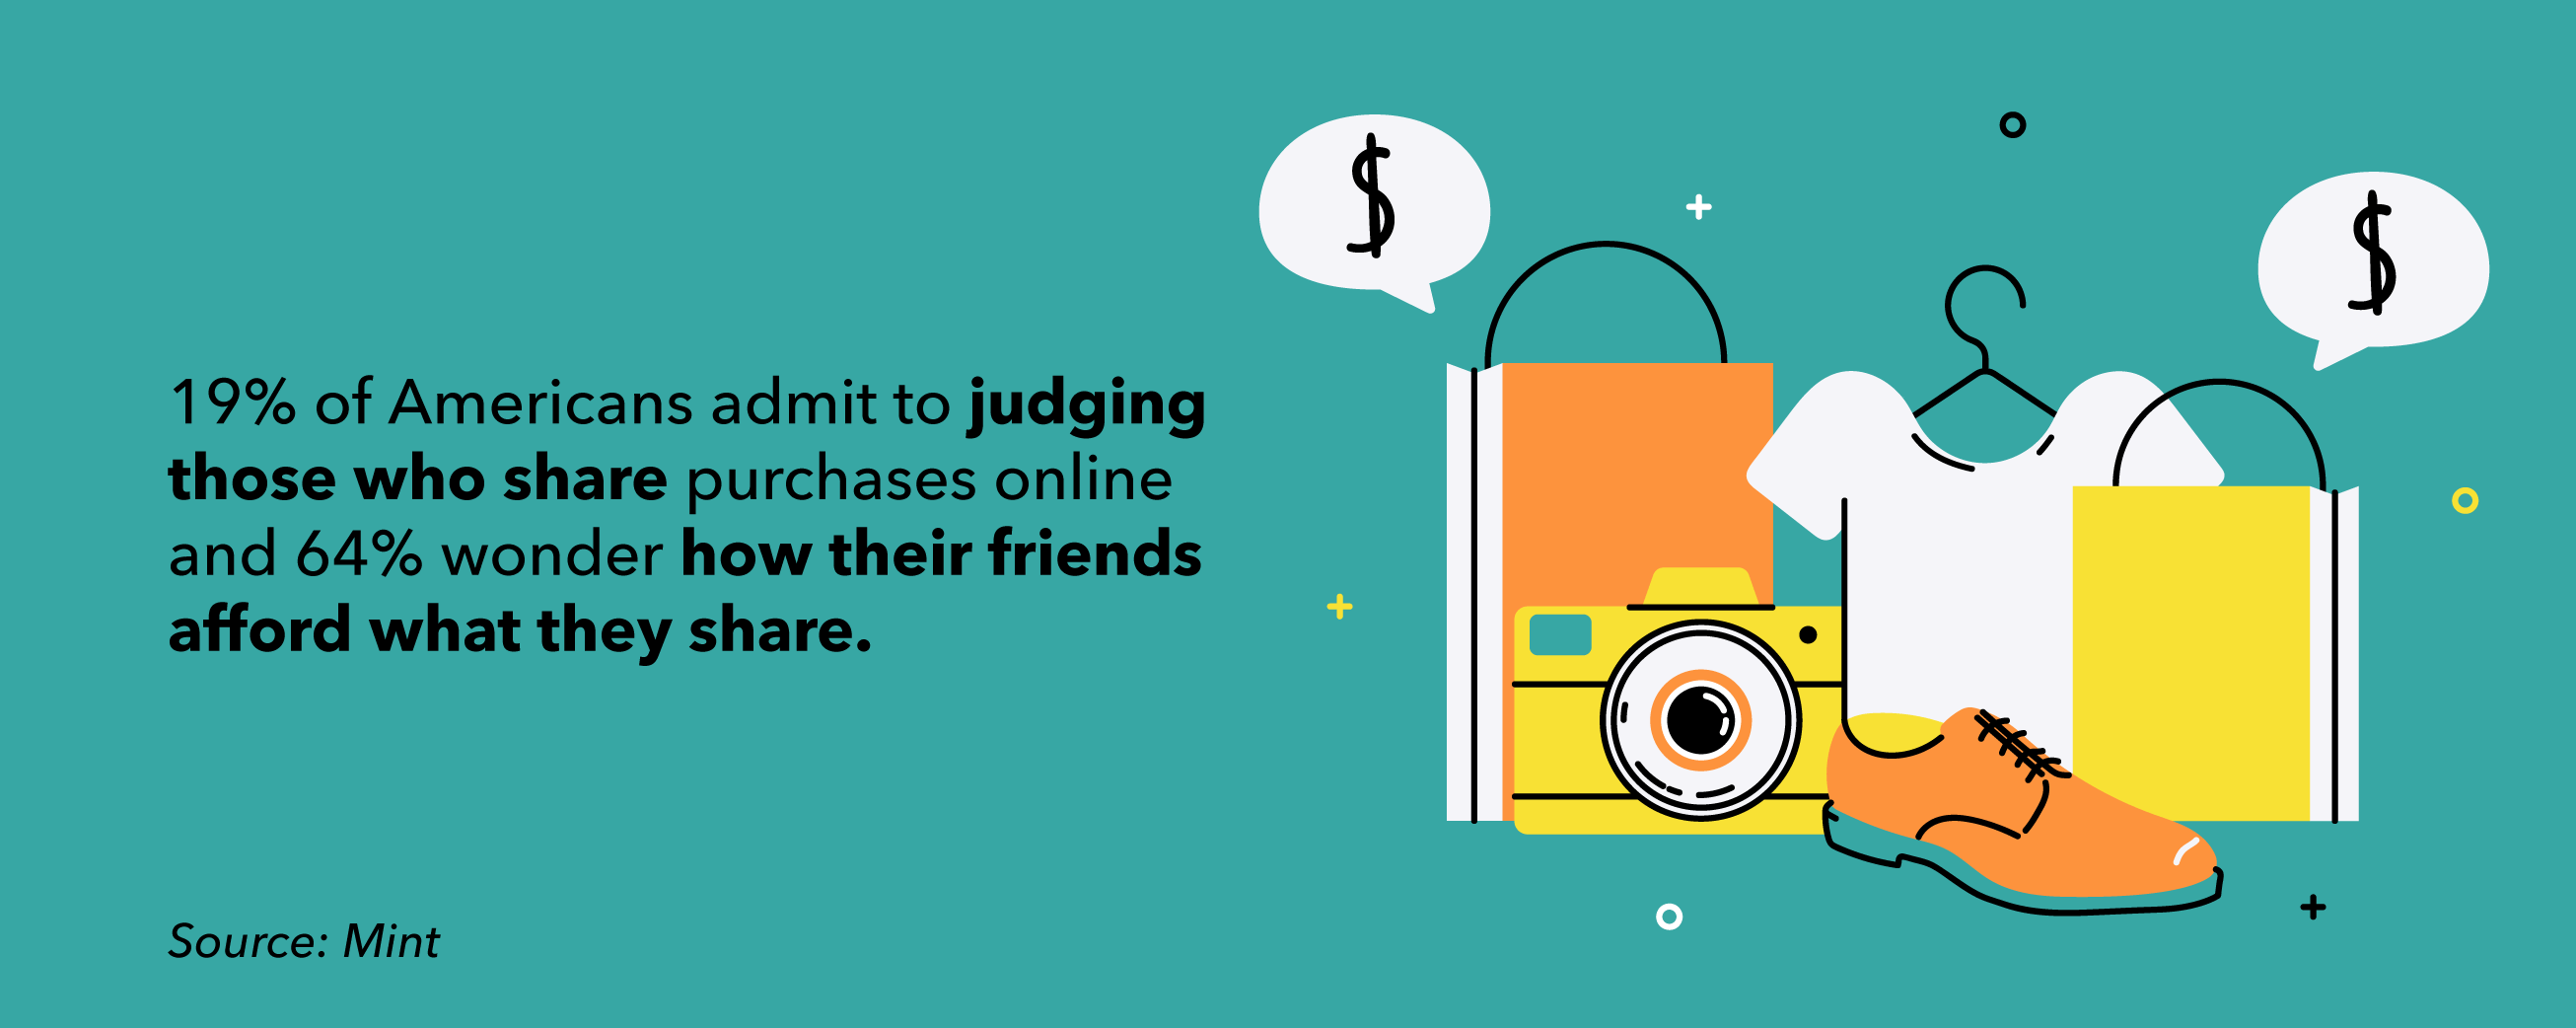 20% of users judge others for sharing their purchases, 64% wonder how their friends afford these purchases